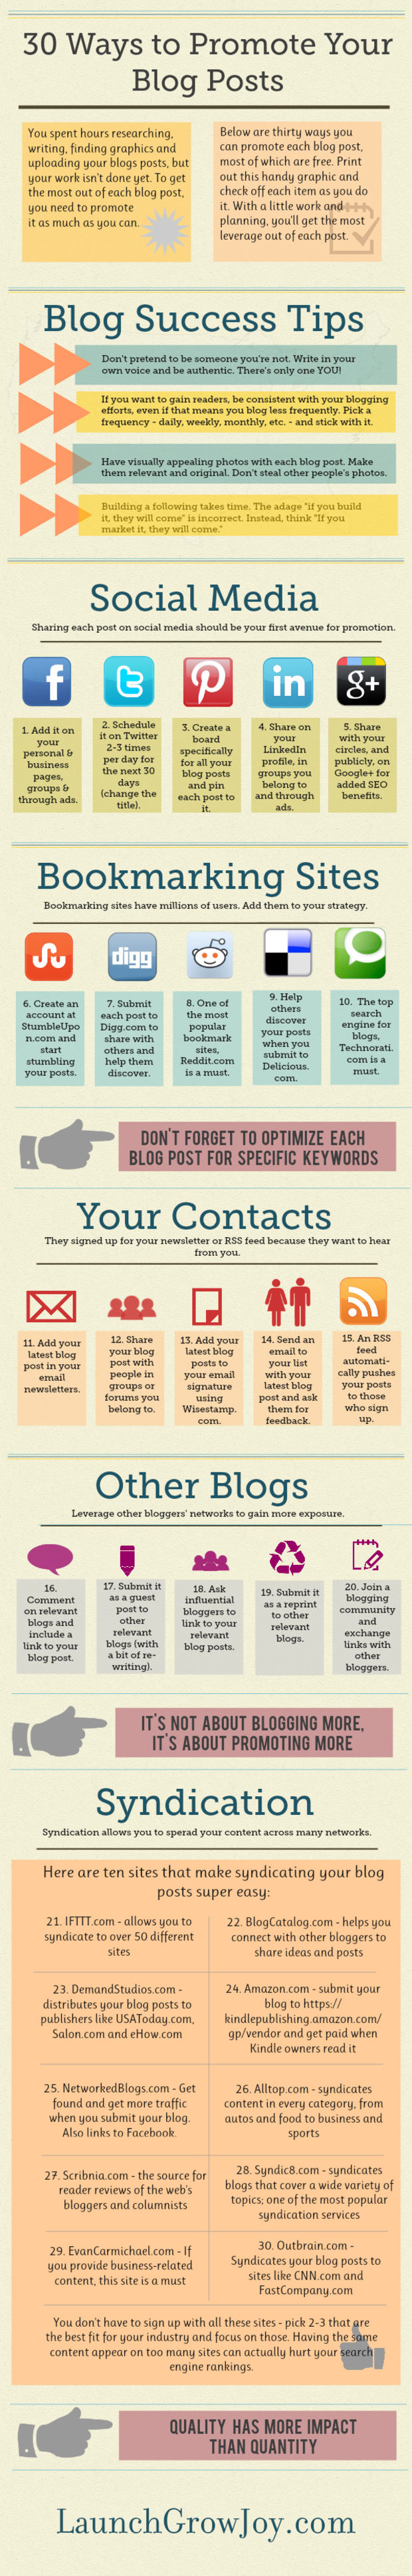 30 Ways To Help You Promote Your Blog Posts [Infographic]